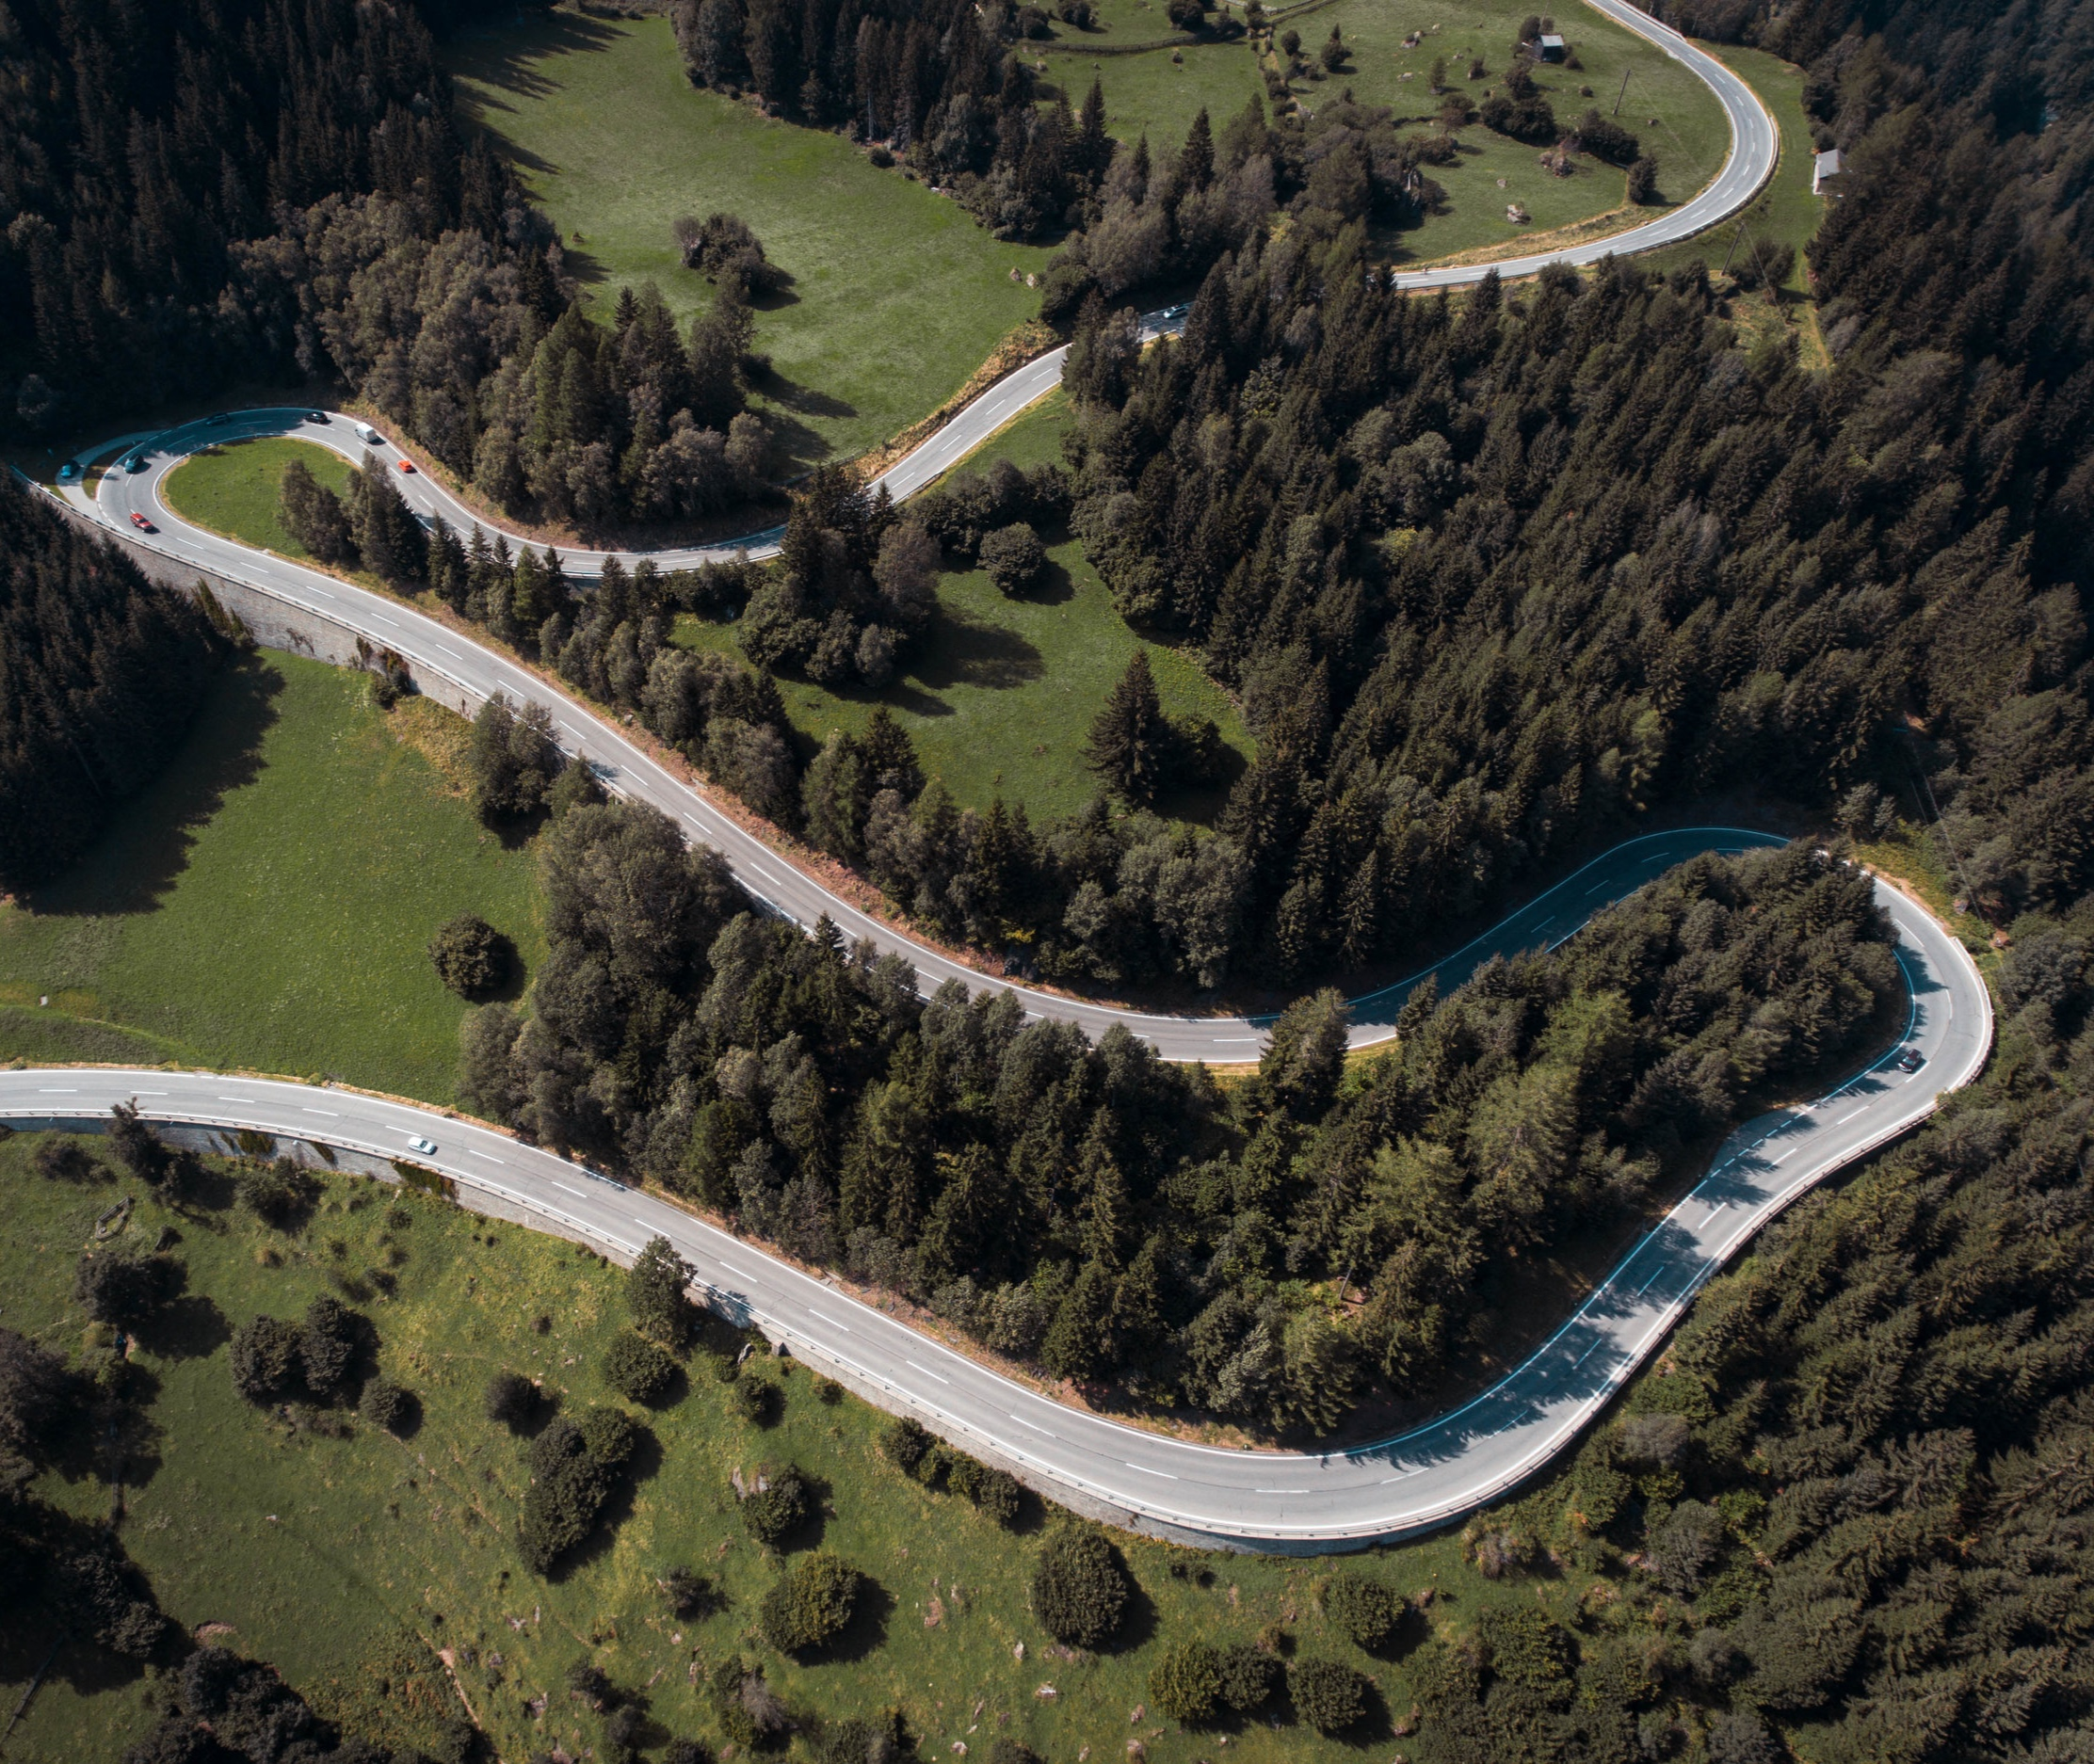 Why Bonnes routes? - As classic car owners we wanted to create a holiday home to give other enthusiasts somewhere safe for their pride and joy, with lots of local insights to help them enjoy the journey as much as the destination. With our exclusive maps, directions, and local knowledge of the best drives, Bonne Routes offers guests something they won't get elsewhere.